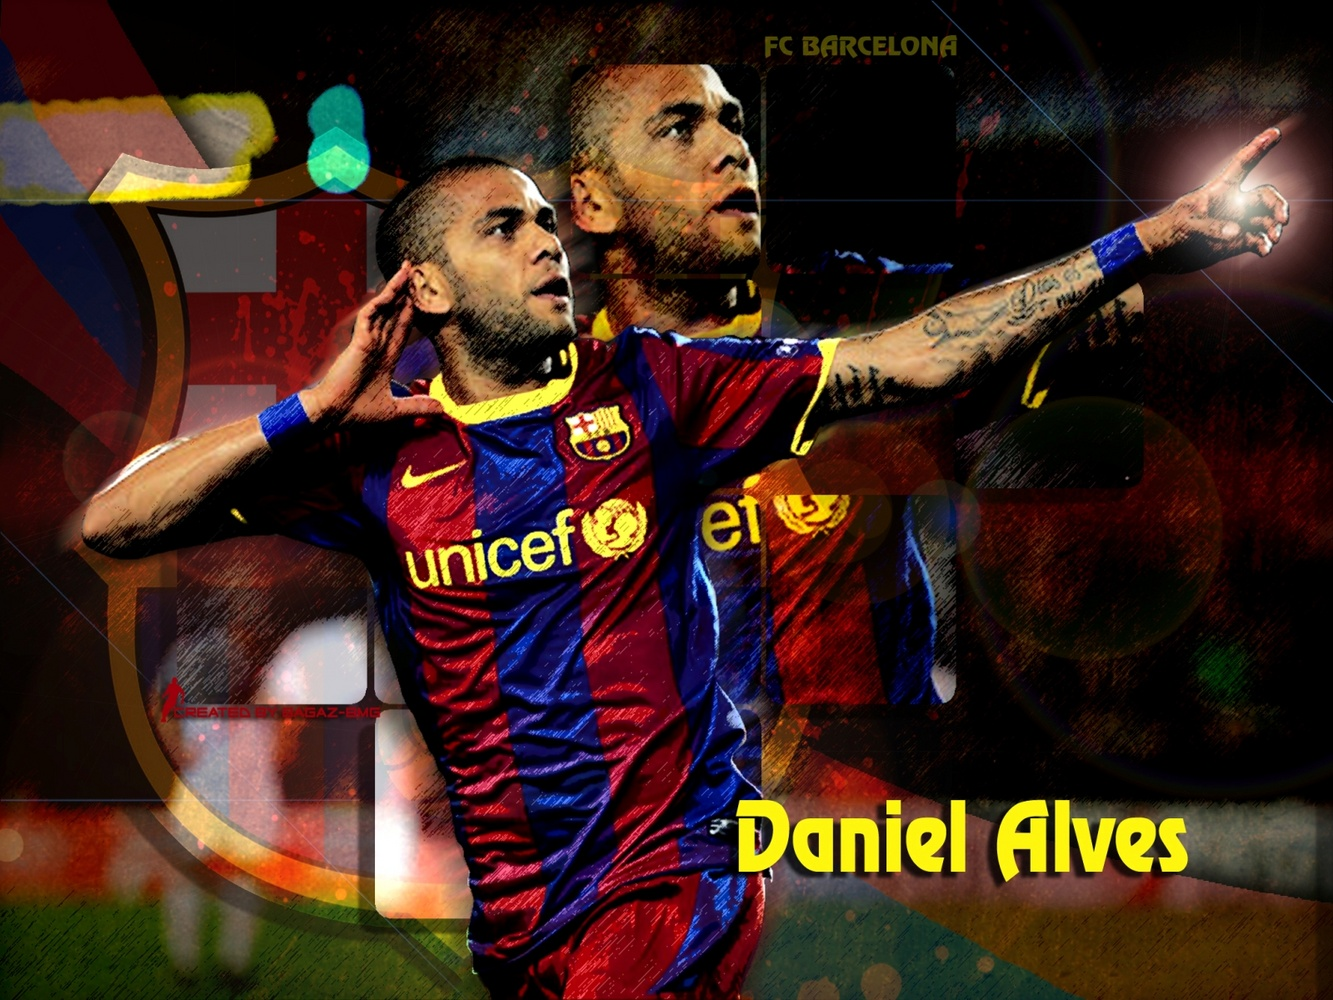 Daniel Alves Wallpaper #2 - FC Barcelona Wallpapers